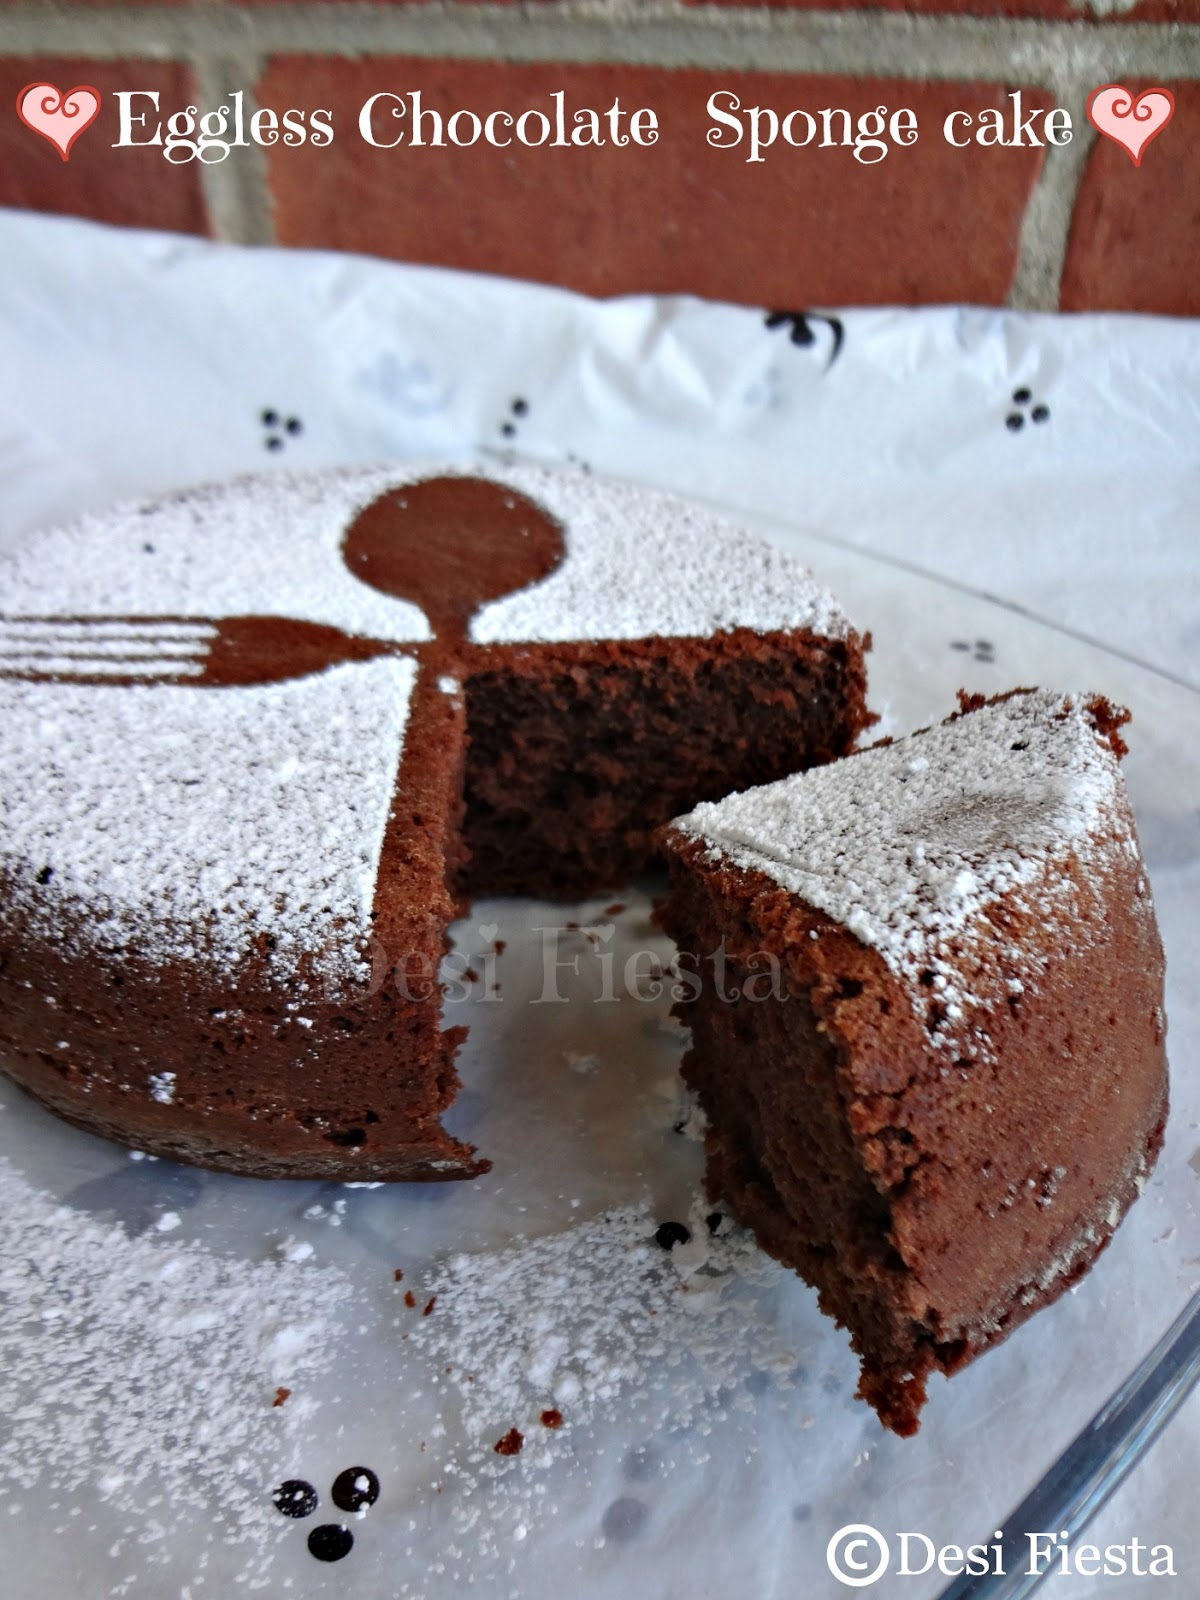 This is a chocolate sponge cake which is perfect with tea or coffee ...